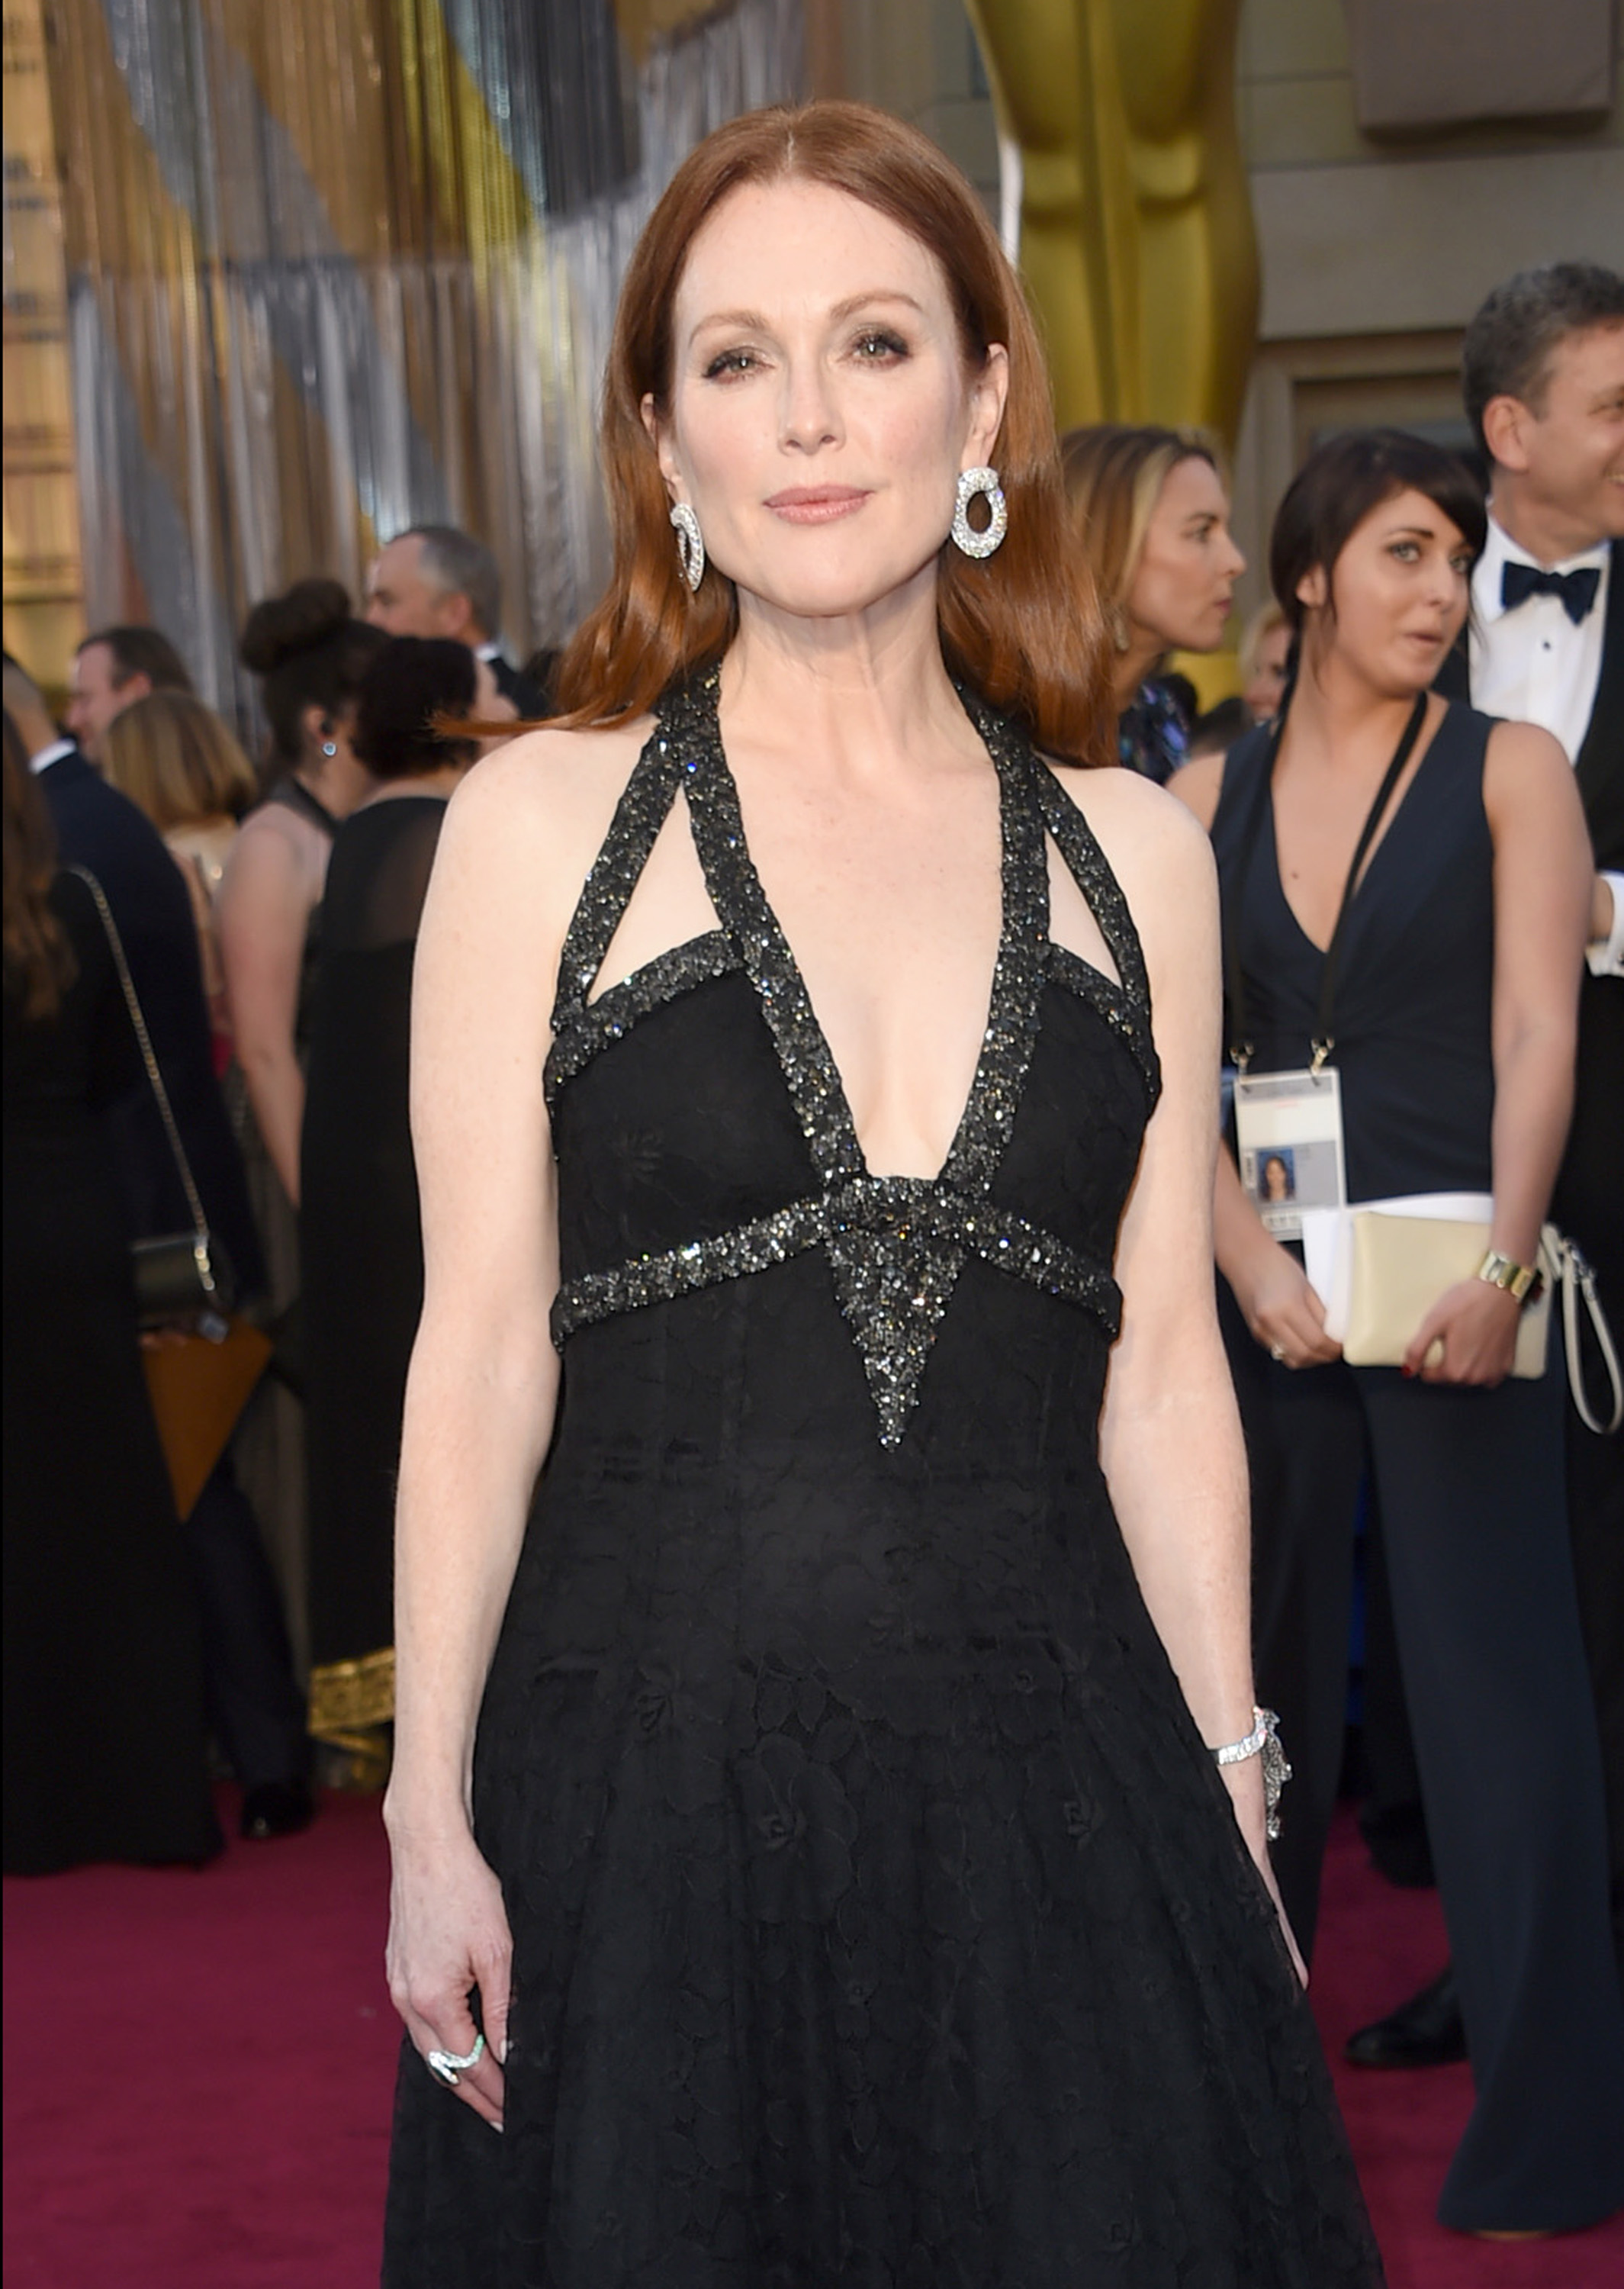 Julianne Moore arrives at the Oscars on Sunday, Feb. 28, 2016, at the Dolby Theatre in Los Angeles. (Photo by Richard Shotwell/Invision/AP)